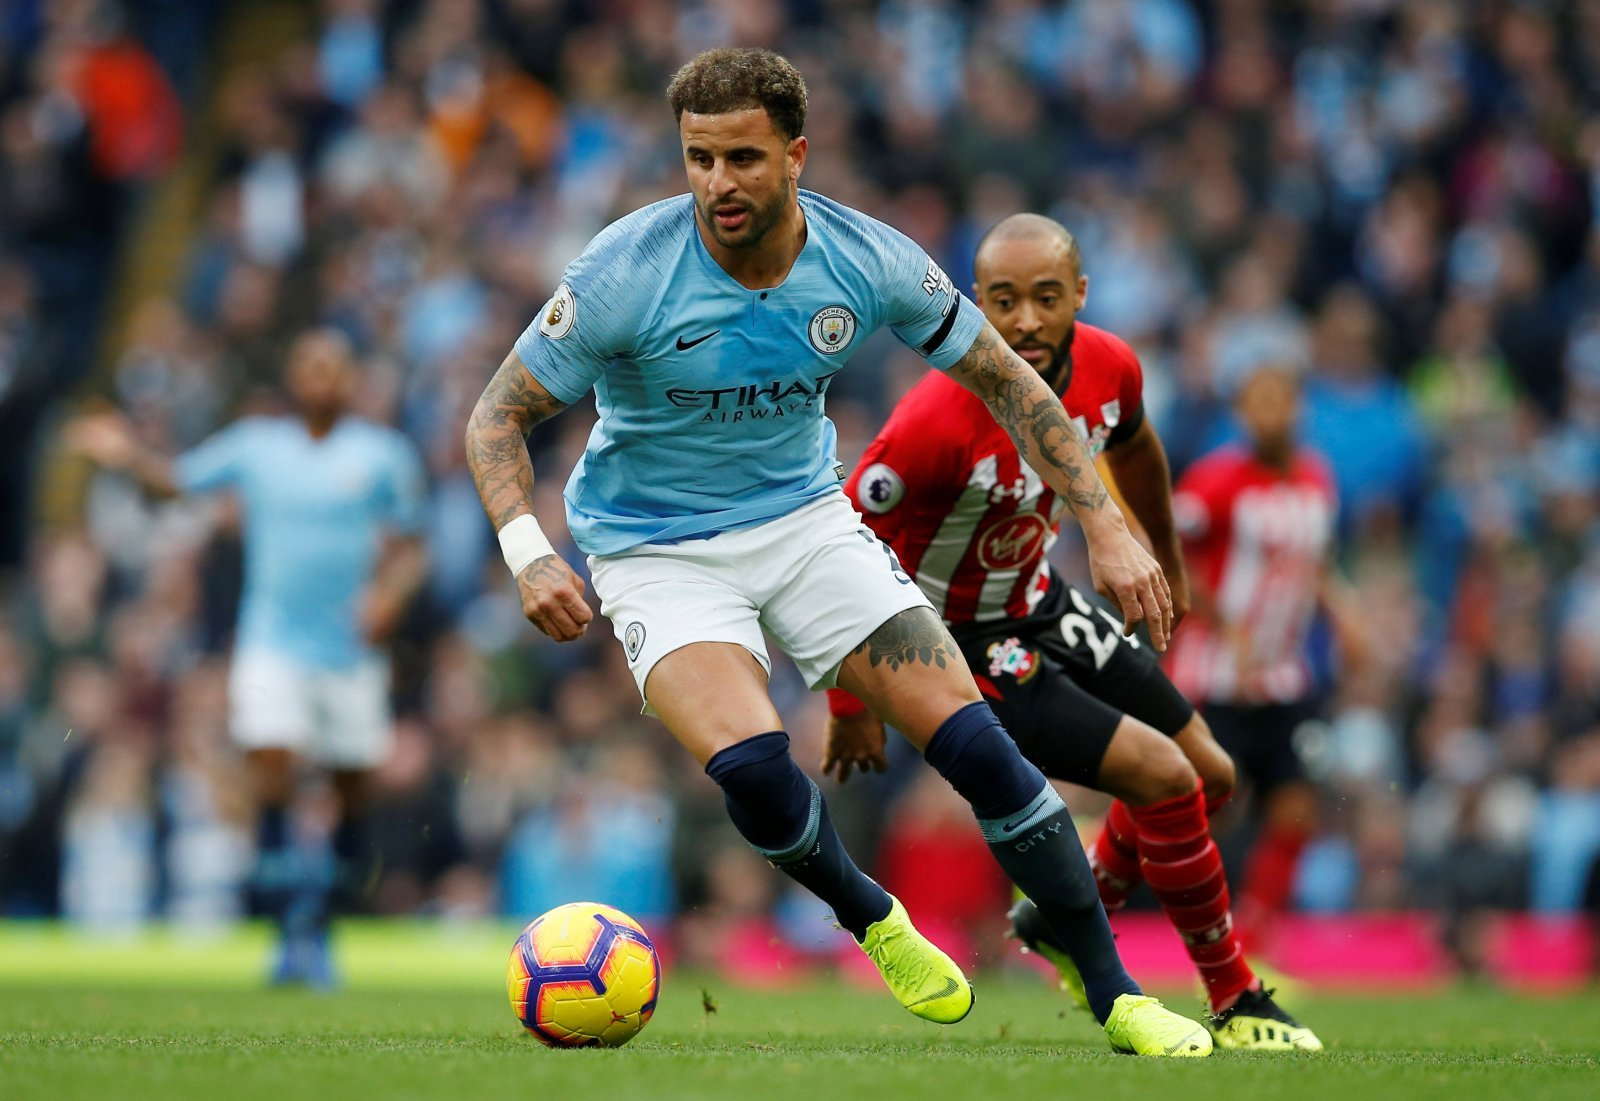 TT Introducing: The best fullback in the league, Kyle Walker